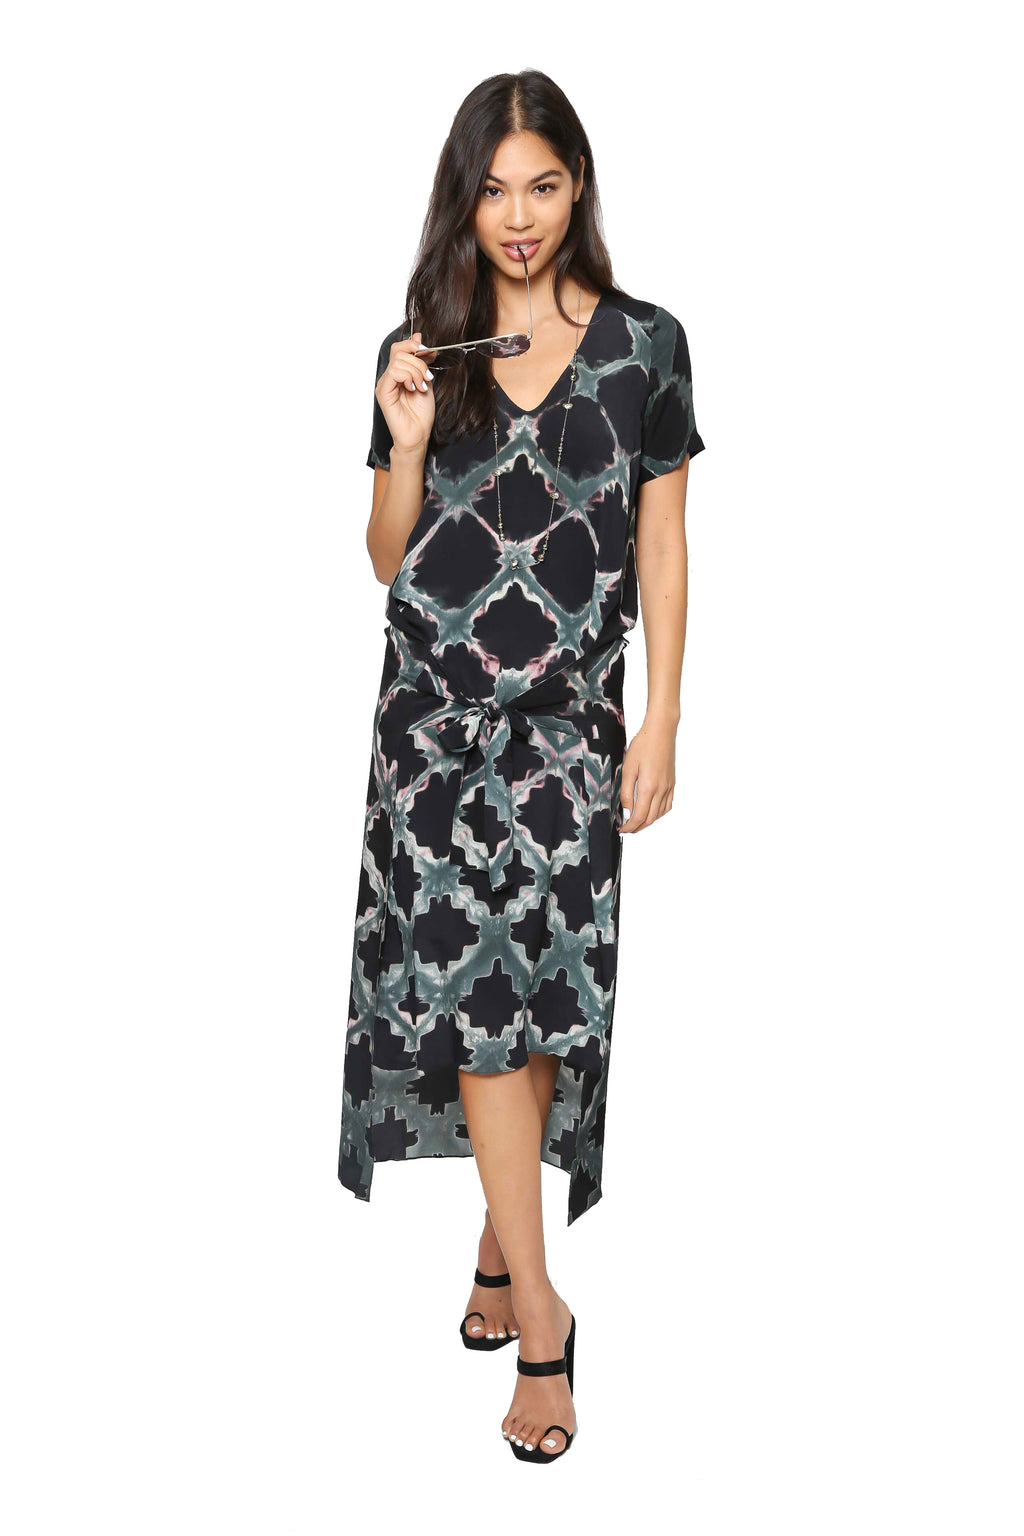 Laura Siegel Geometric Clamp Tie Dress